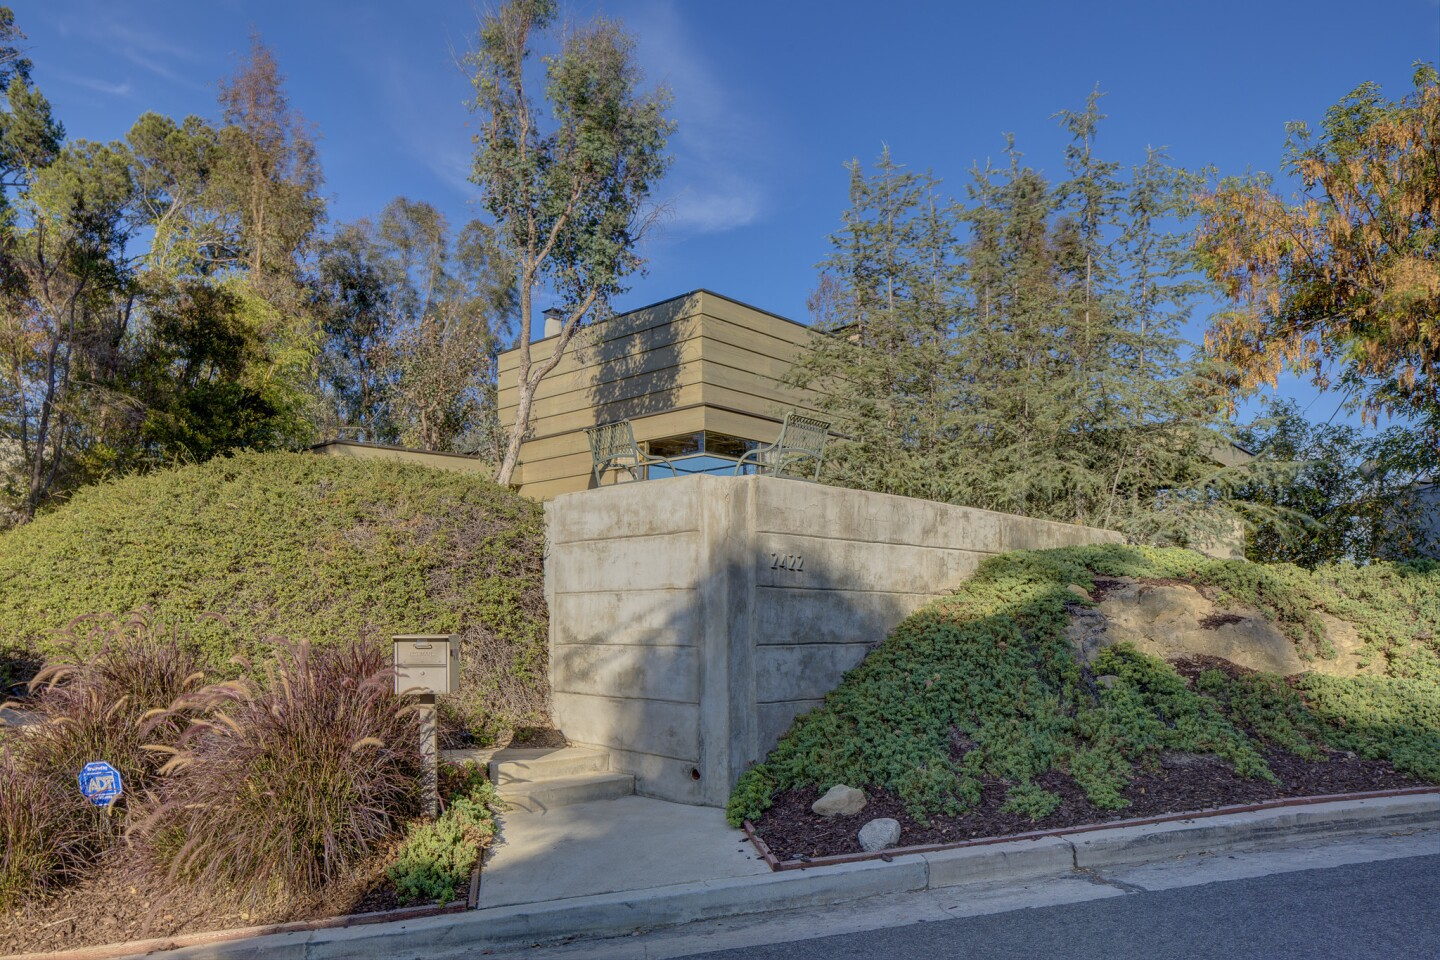 Home of the Day: A modernist original in Silver Lake by Rudolph Schindler